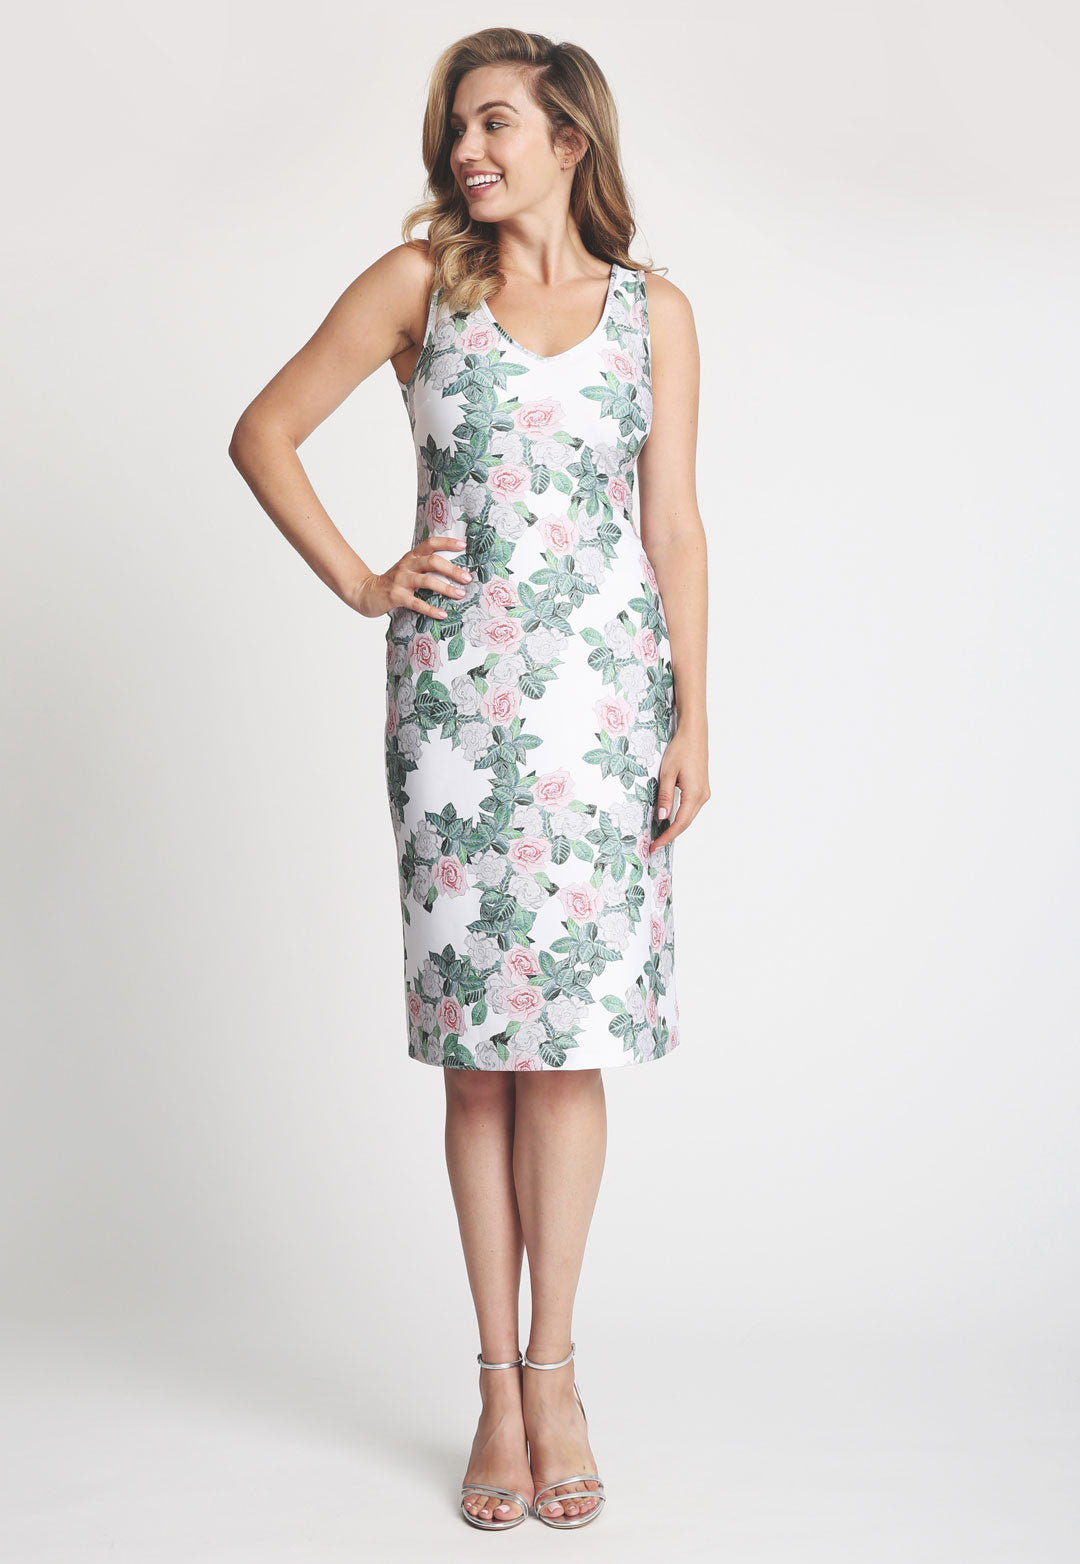 Lavinia Short Dress in Gardenia front view